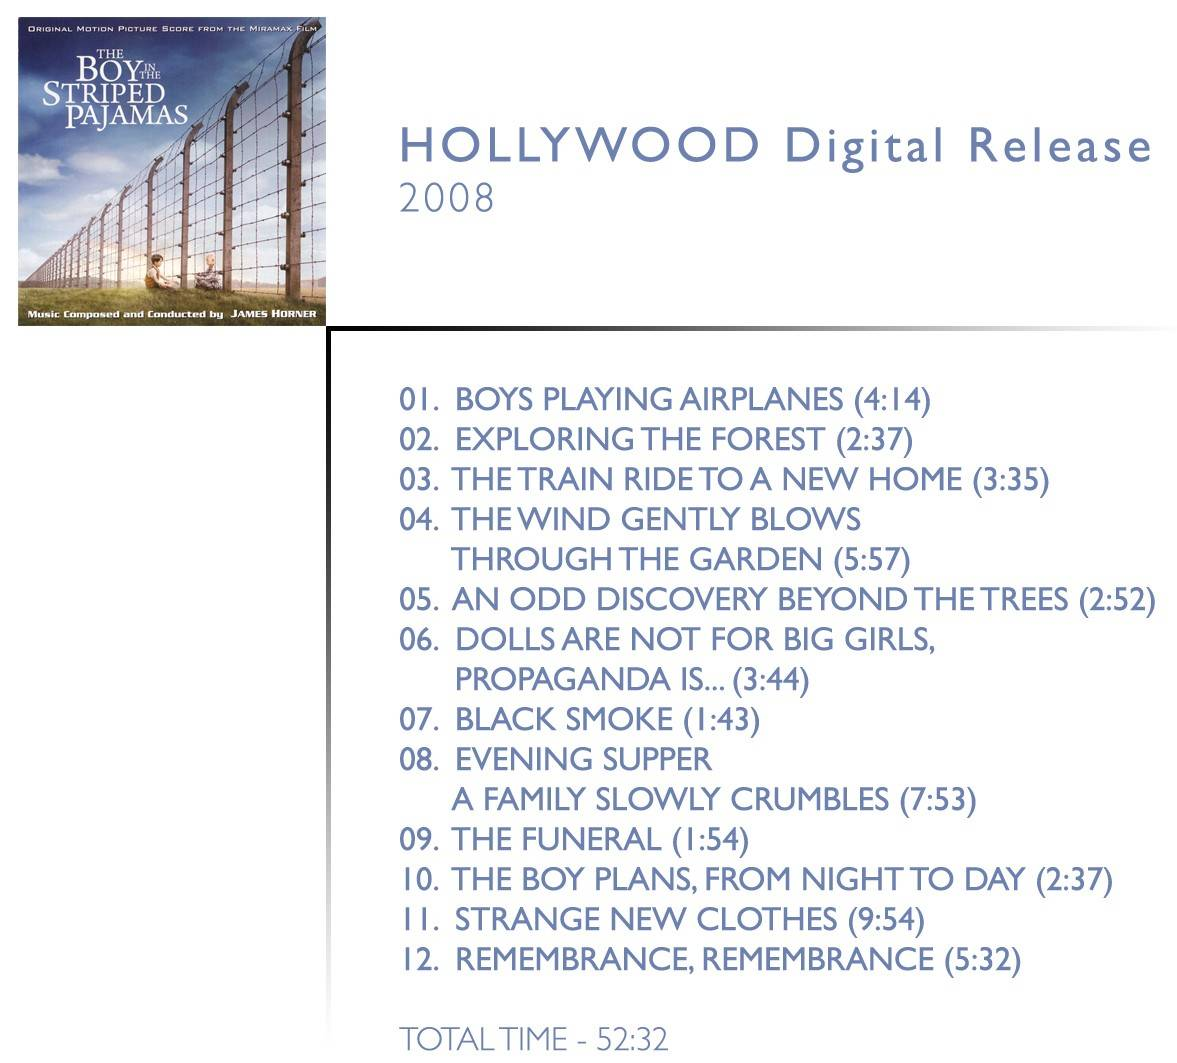 1.  Boys Playing Airplanes (04:14) 2.  Exploring The Forest (02:37) 3.  The Train Ride To A New Home (03:35) 4.  The Wind Gently Blows Through The Garden (05:57) 5.  An Odd Discovery Beyond the Trees (02:52) 6.  Dolls Are Not For Big Girls, Propaganda is... (03:44) 7.  Black Smoke (01:43) 8.  Evening Supper – A Family Slowly Crumbles (07:53) 9.  The Funeral (01:54) 10.  The Boy Plans, From Night To Day (02:37) 11.  Strange New Clothes (09:54) 12.  Remembrance, Remembrance (05:32)